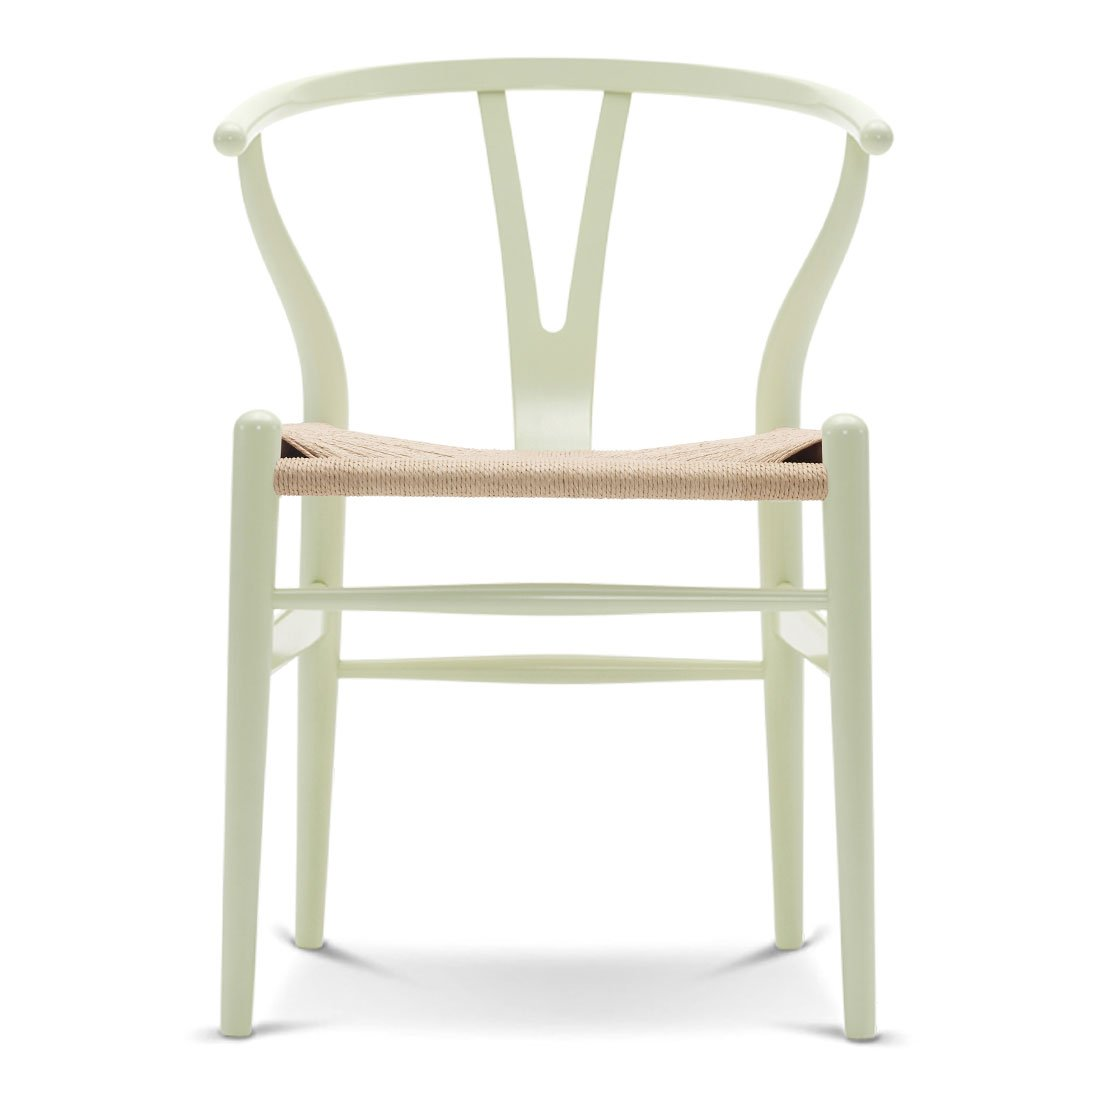 Carl Hansen Wishbone Chair NCS 1020-G60Y - Naturel